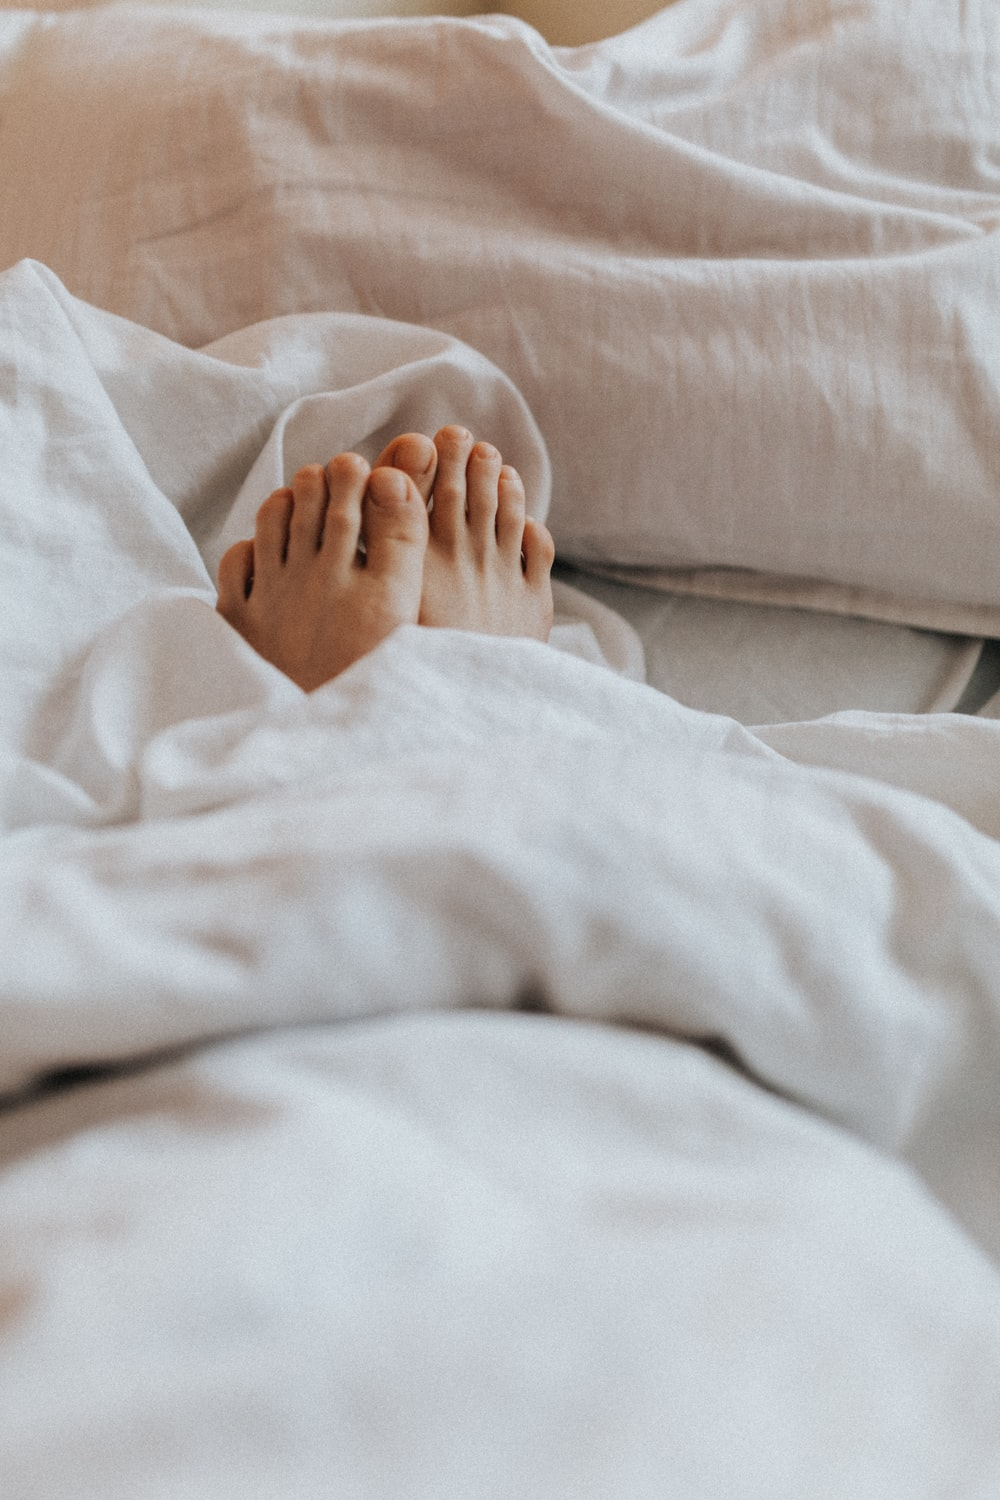 person lying on white bed